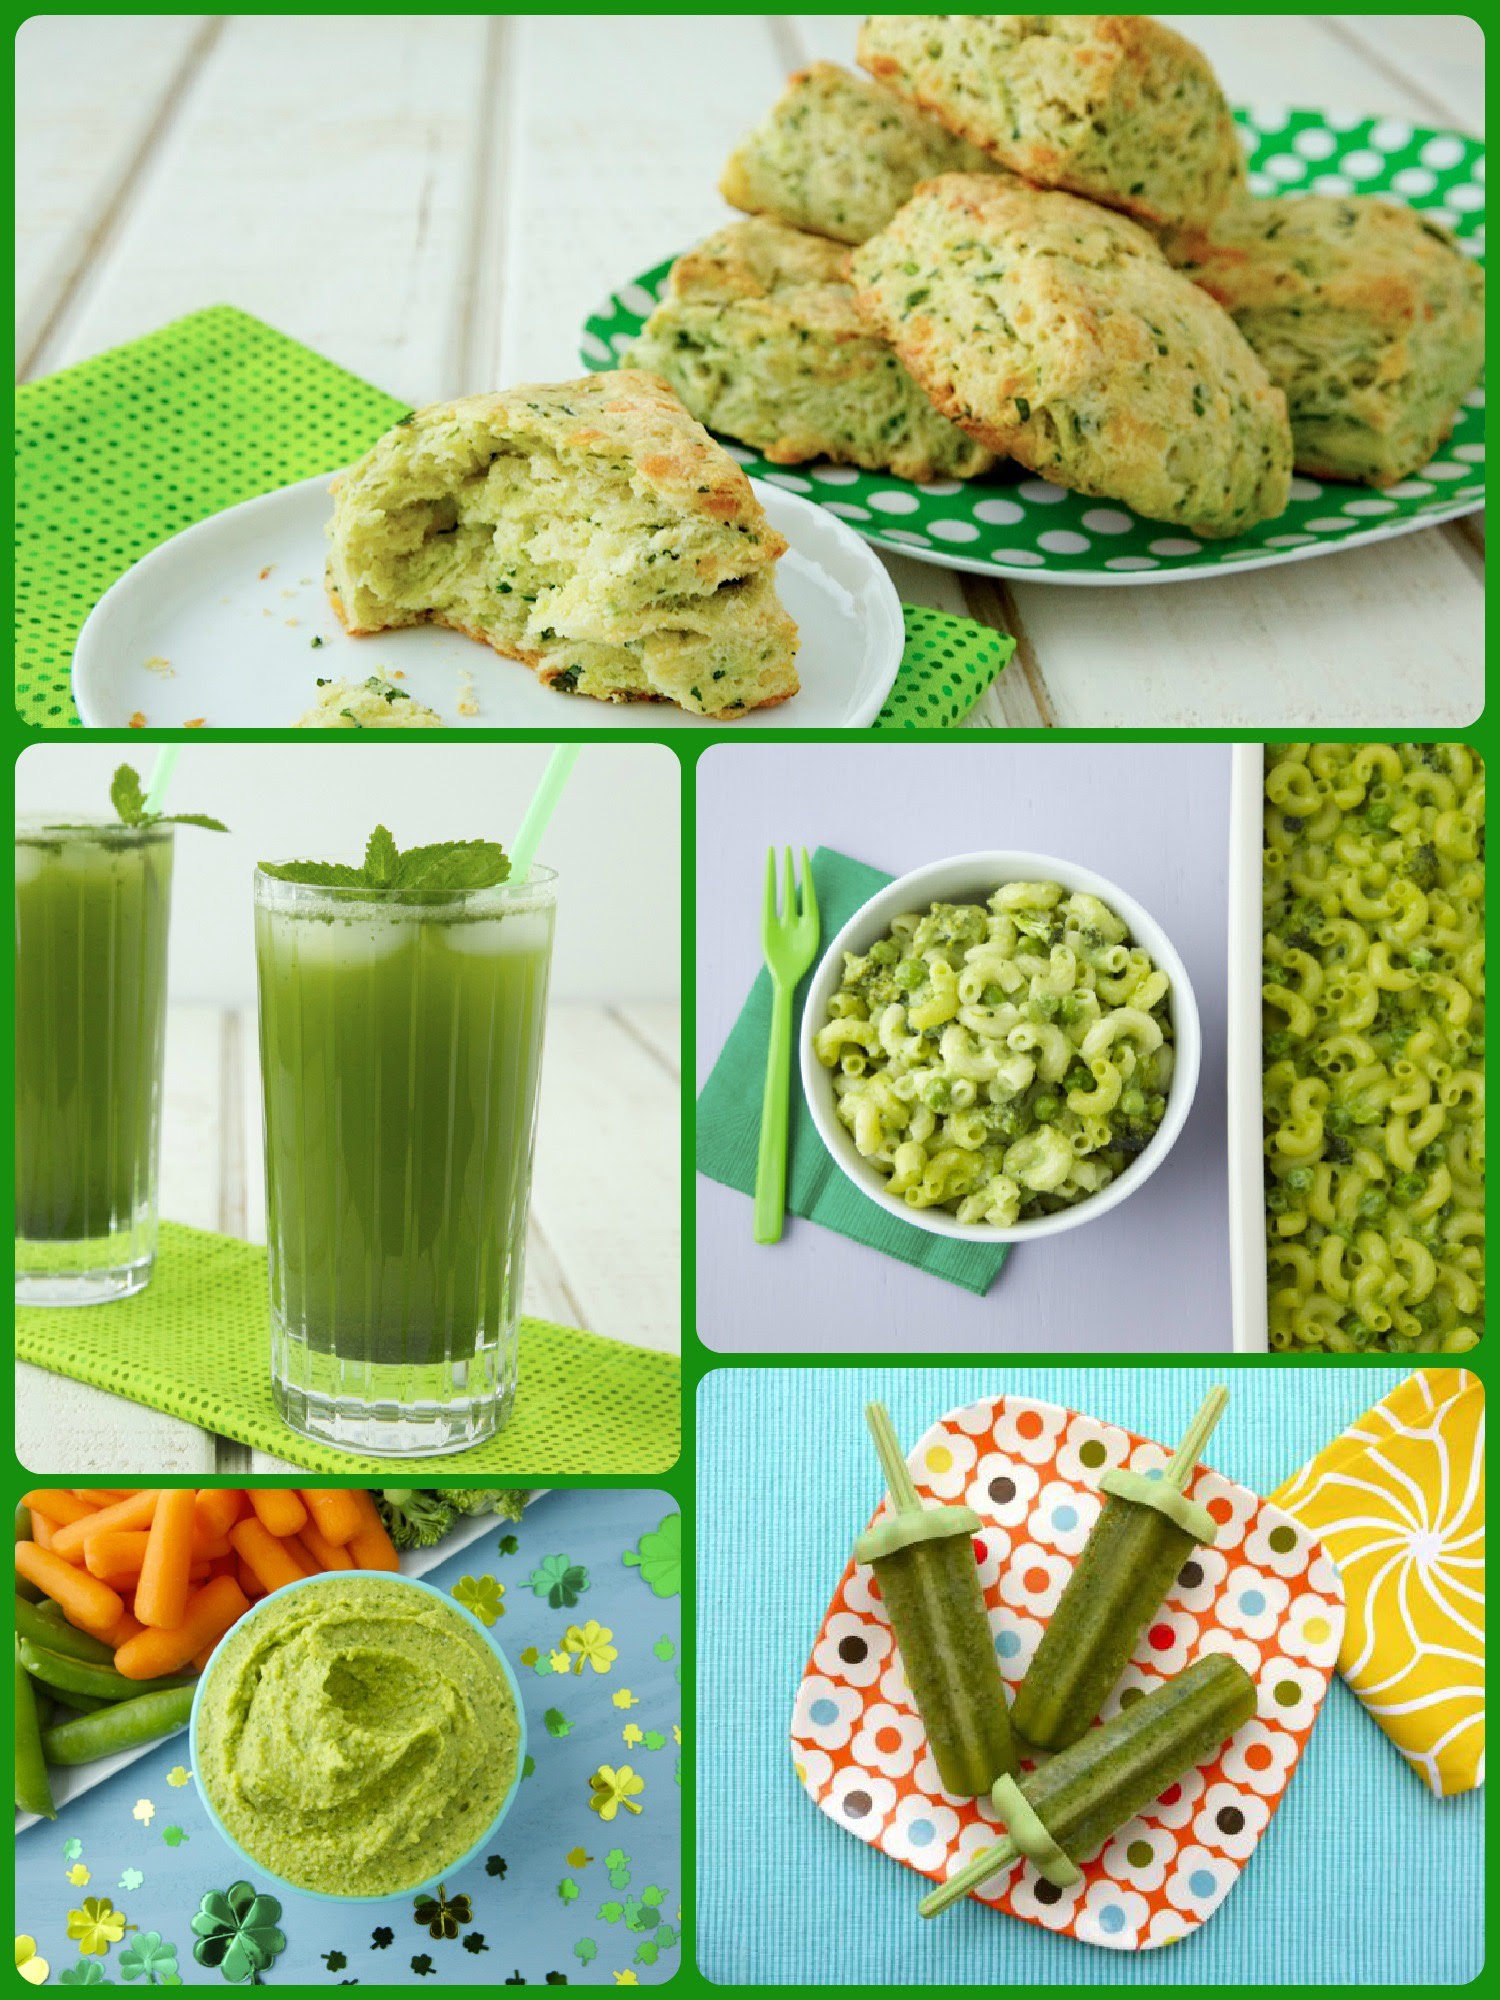 http://weelicious.com/wp-content/uploads/2013/03/Green-Recipes-Collage.jpg